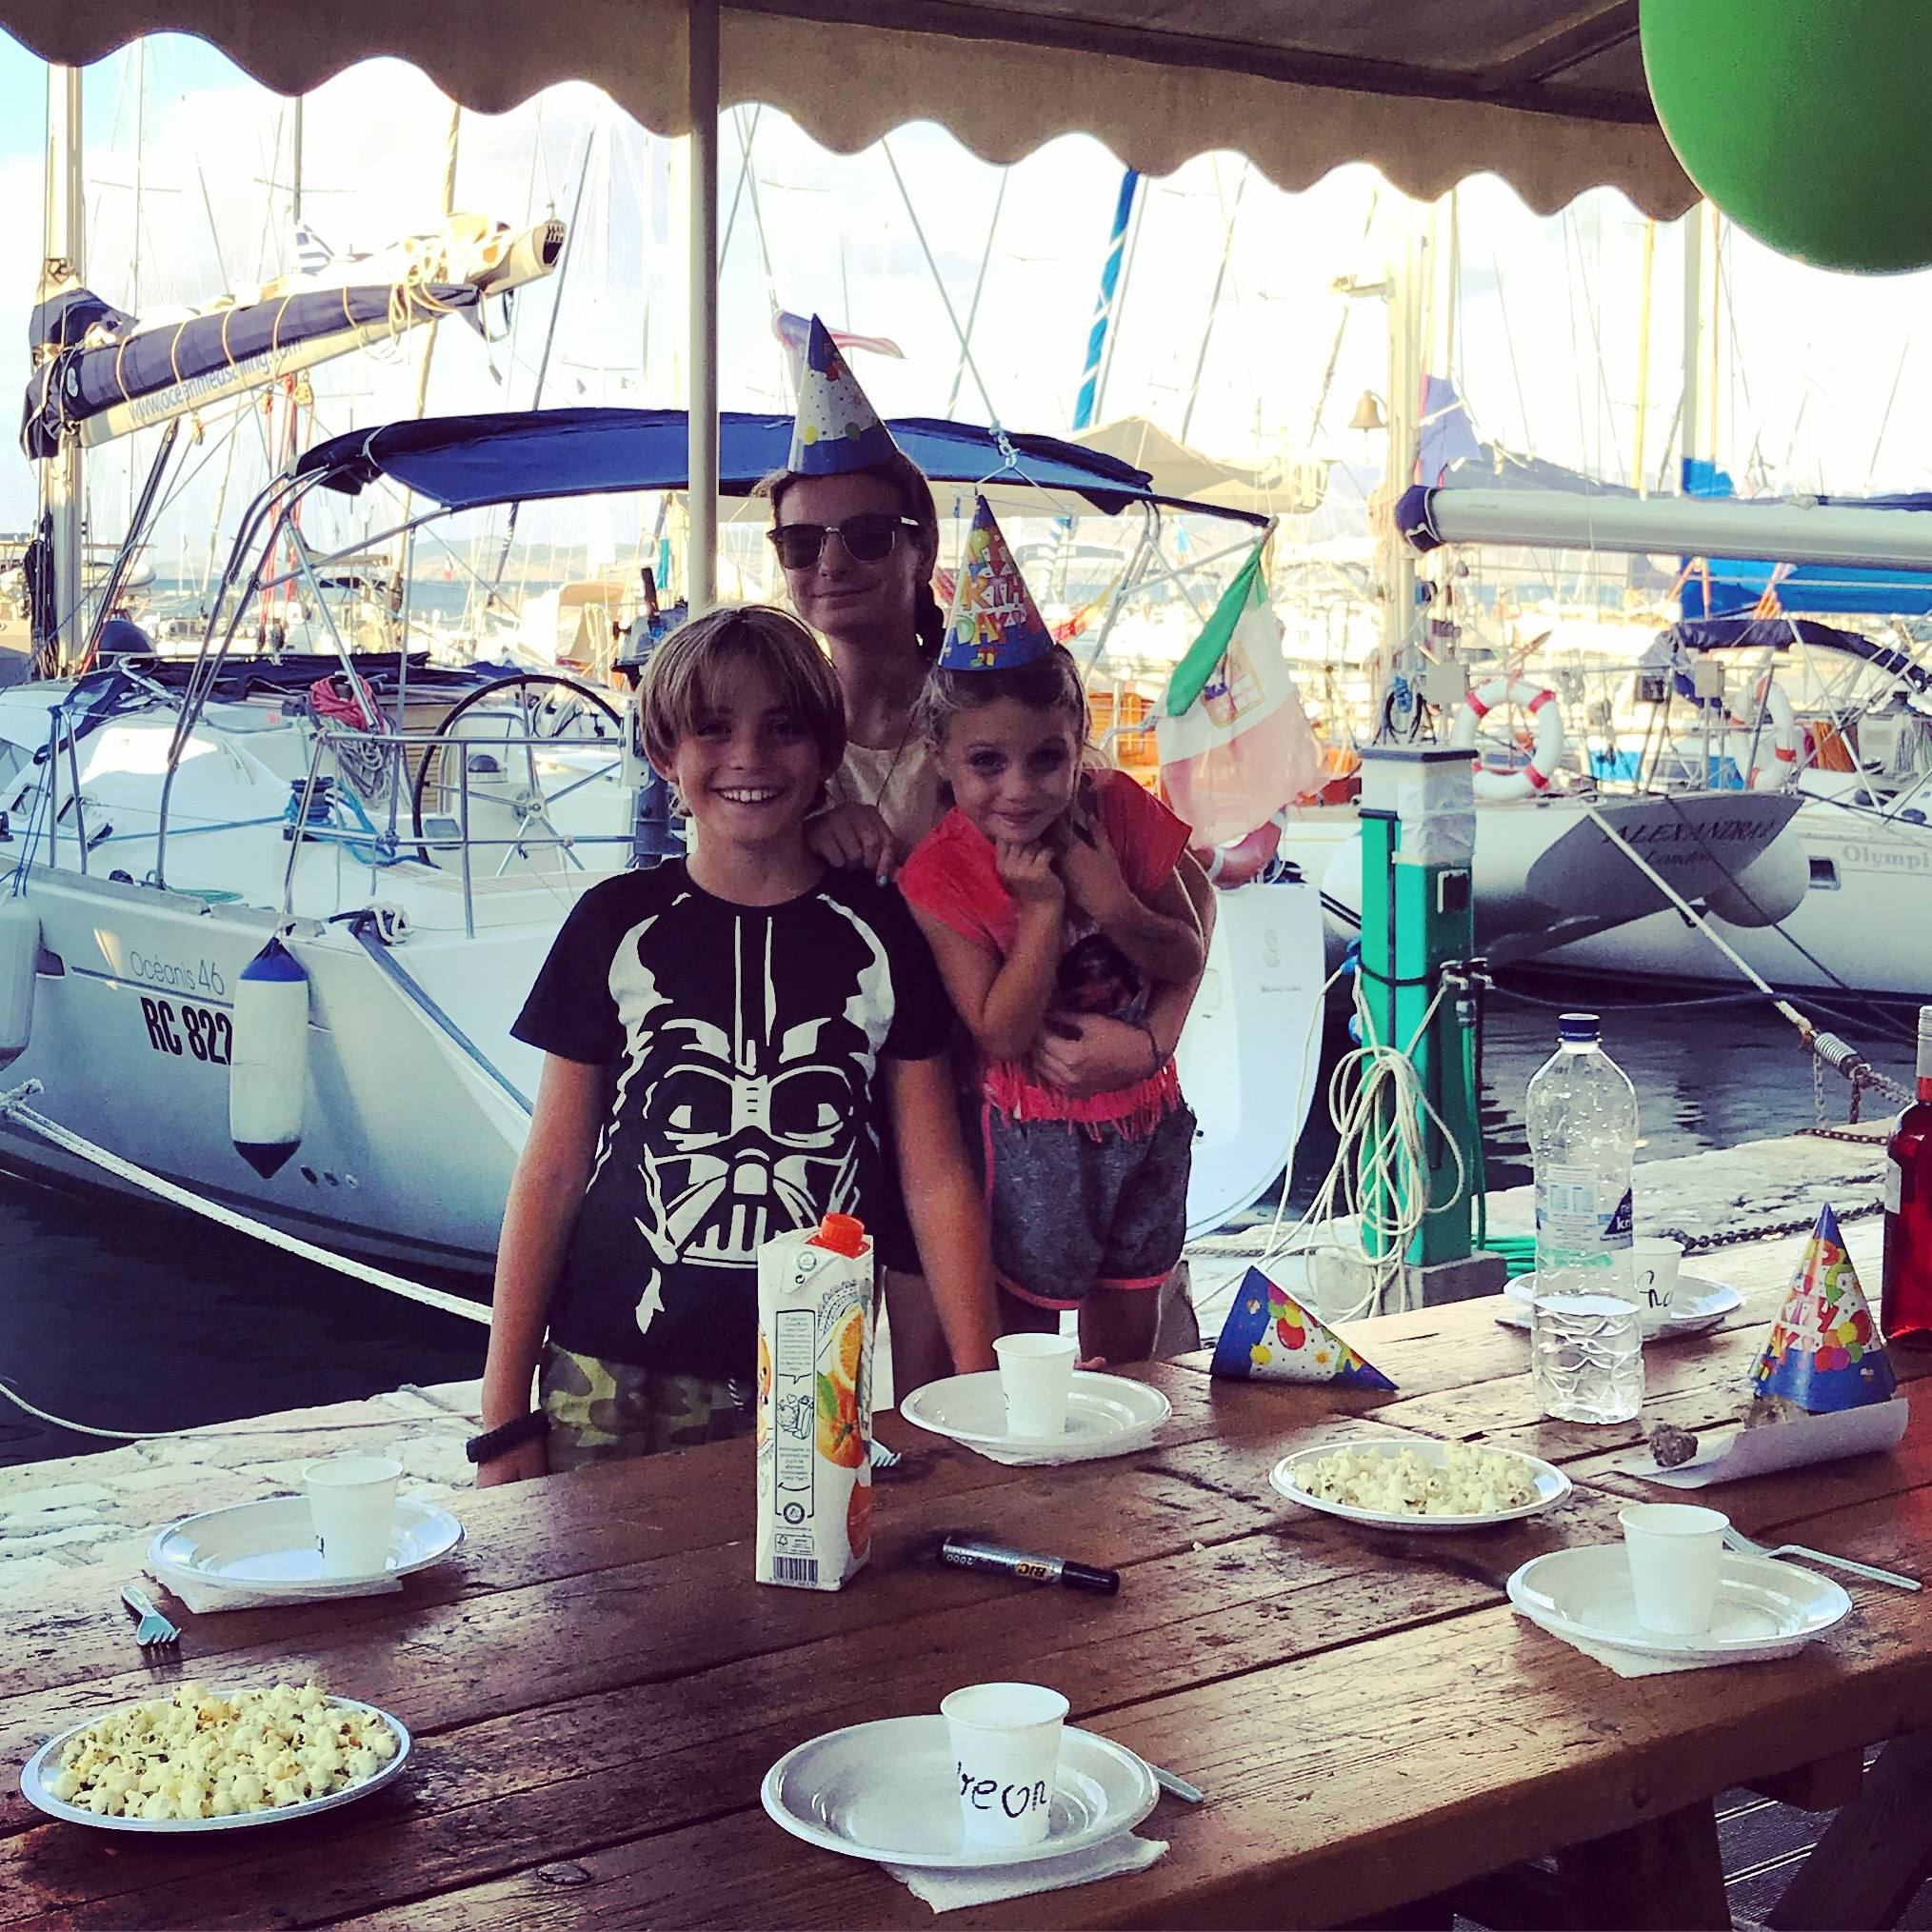 valeila compleanno